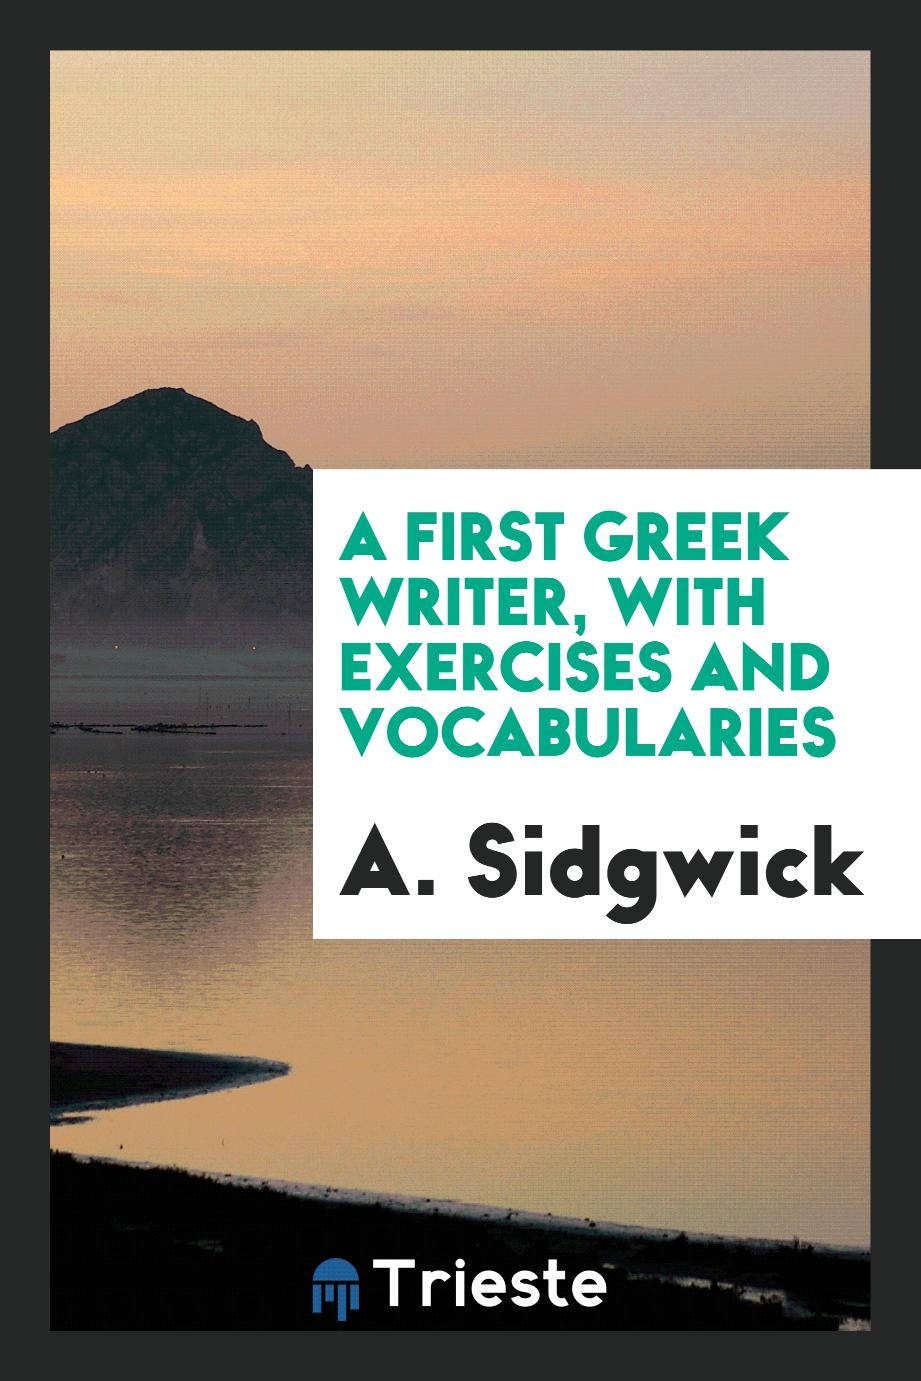 A First Greek Writer, with Exercises and Vocabularies